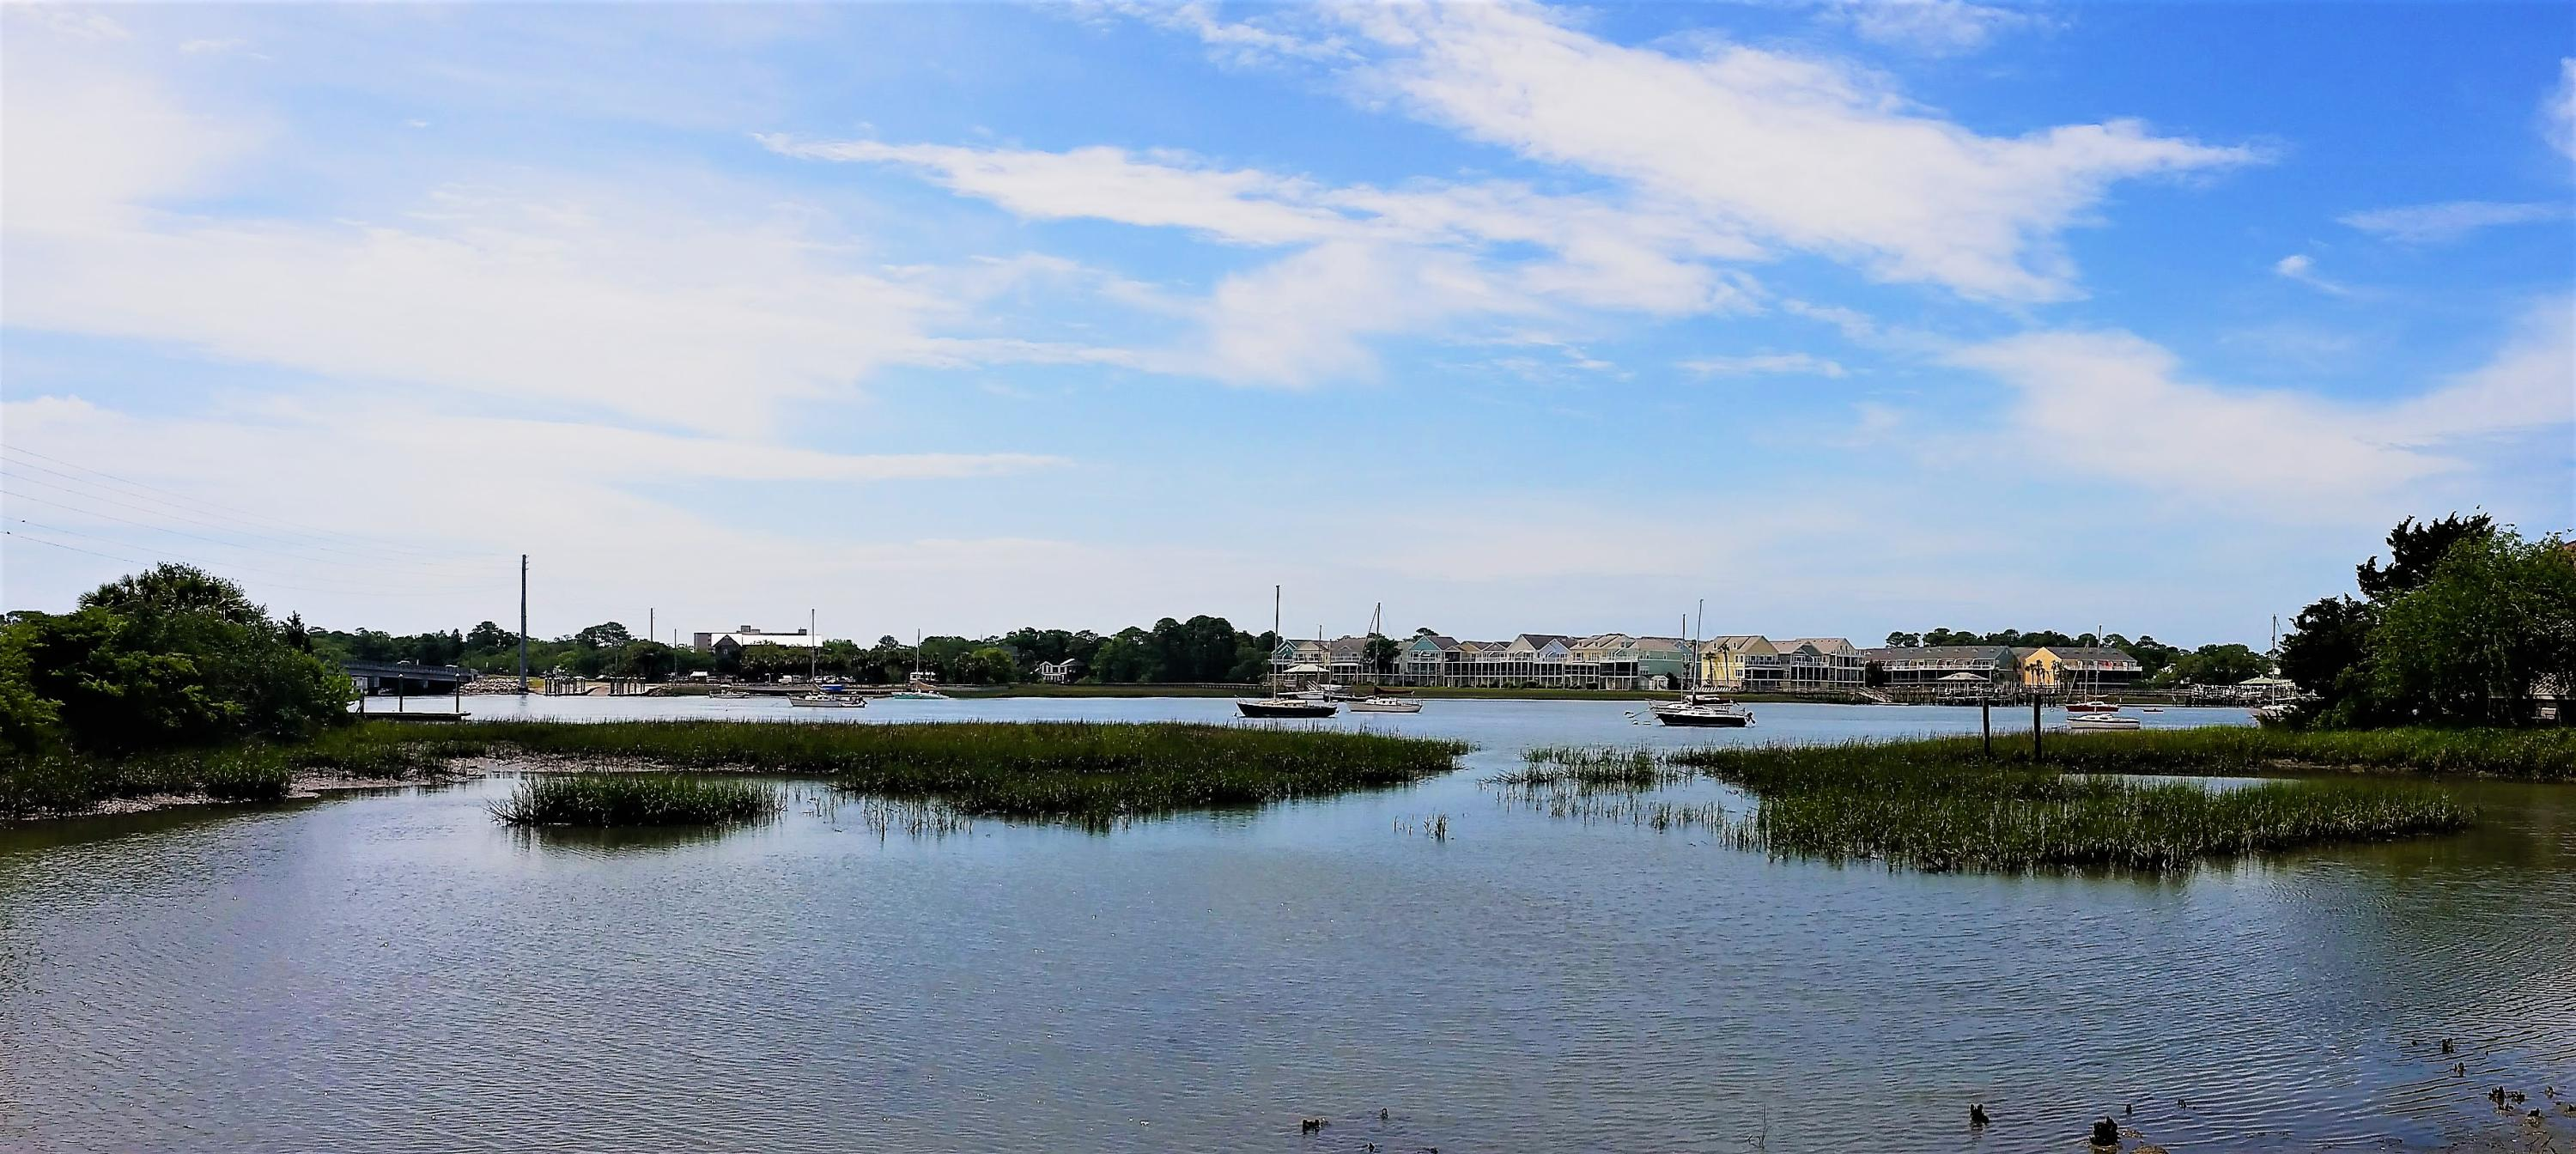 Mariners Cay Homes For Sale - 12 Mariners Cay, Folly Beach, SC - 8